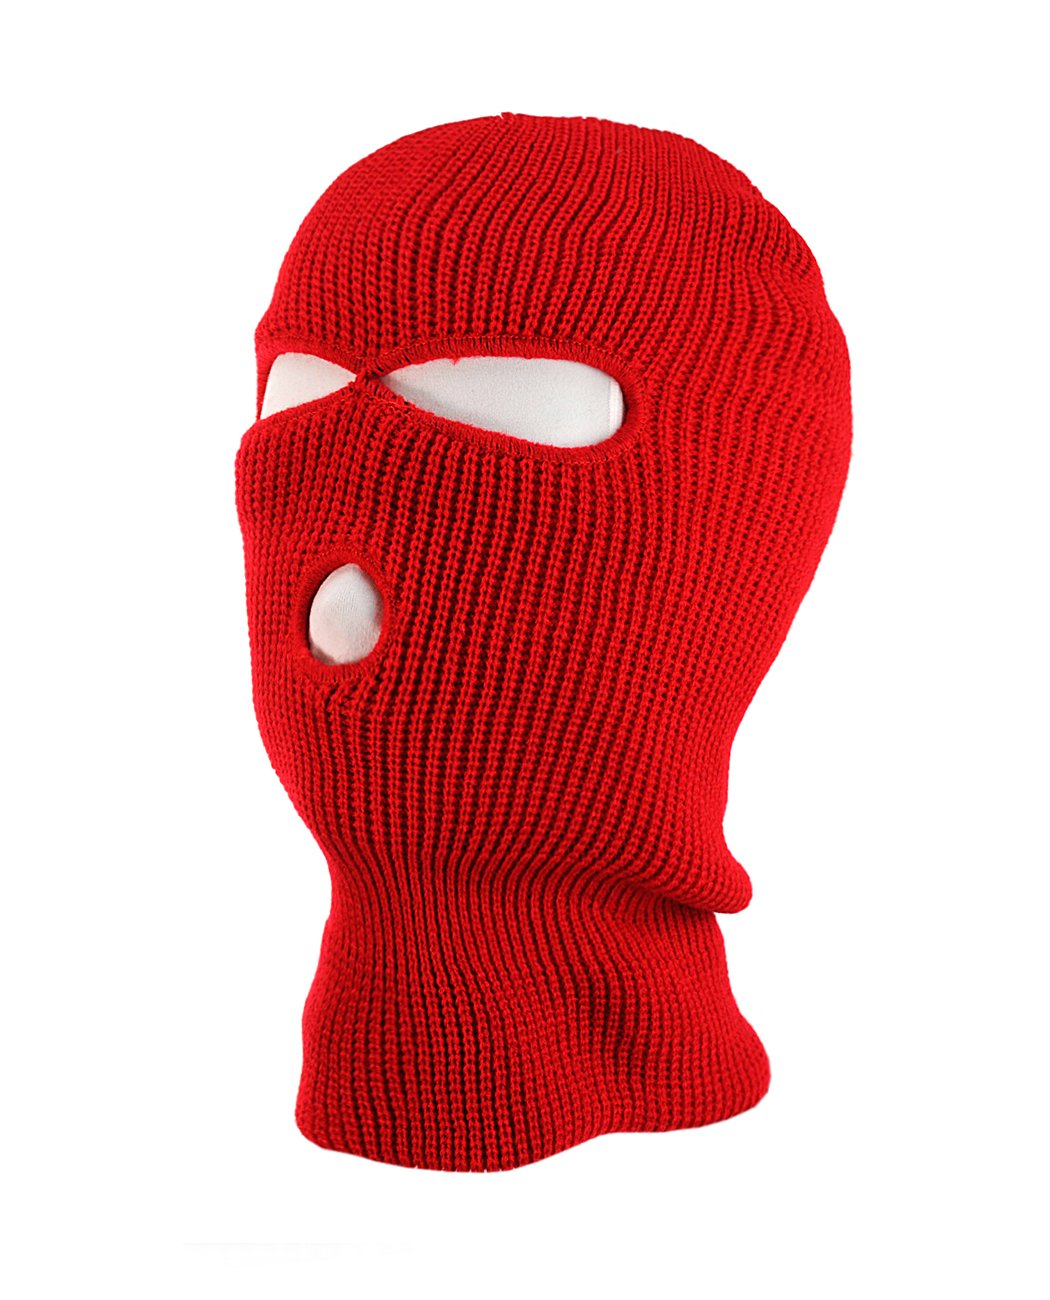 NYfashion101 Winter Warm Ribbed 3 Hole Face Ski Mask 3HoleMask-NV